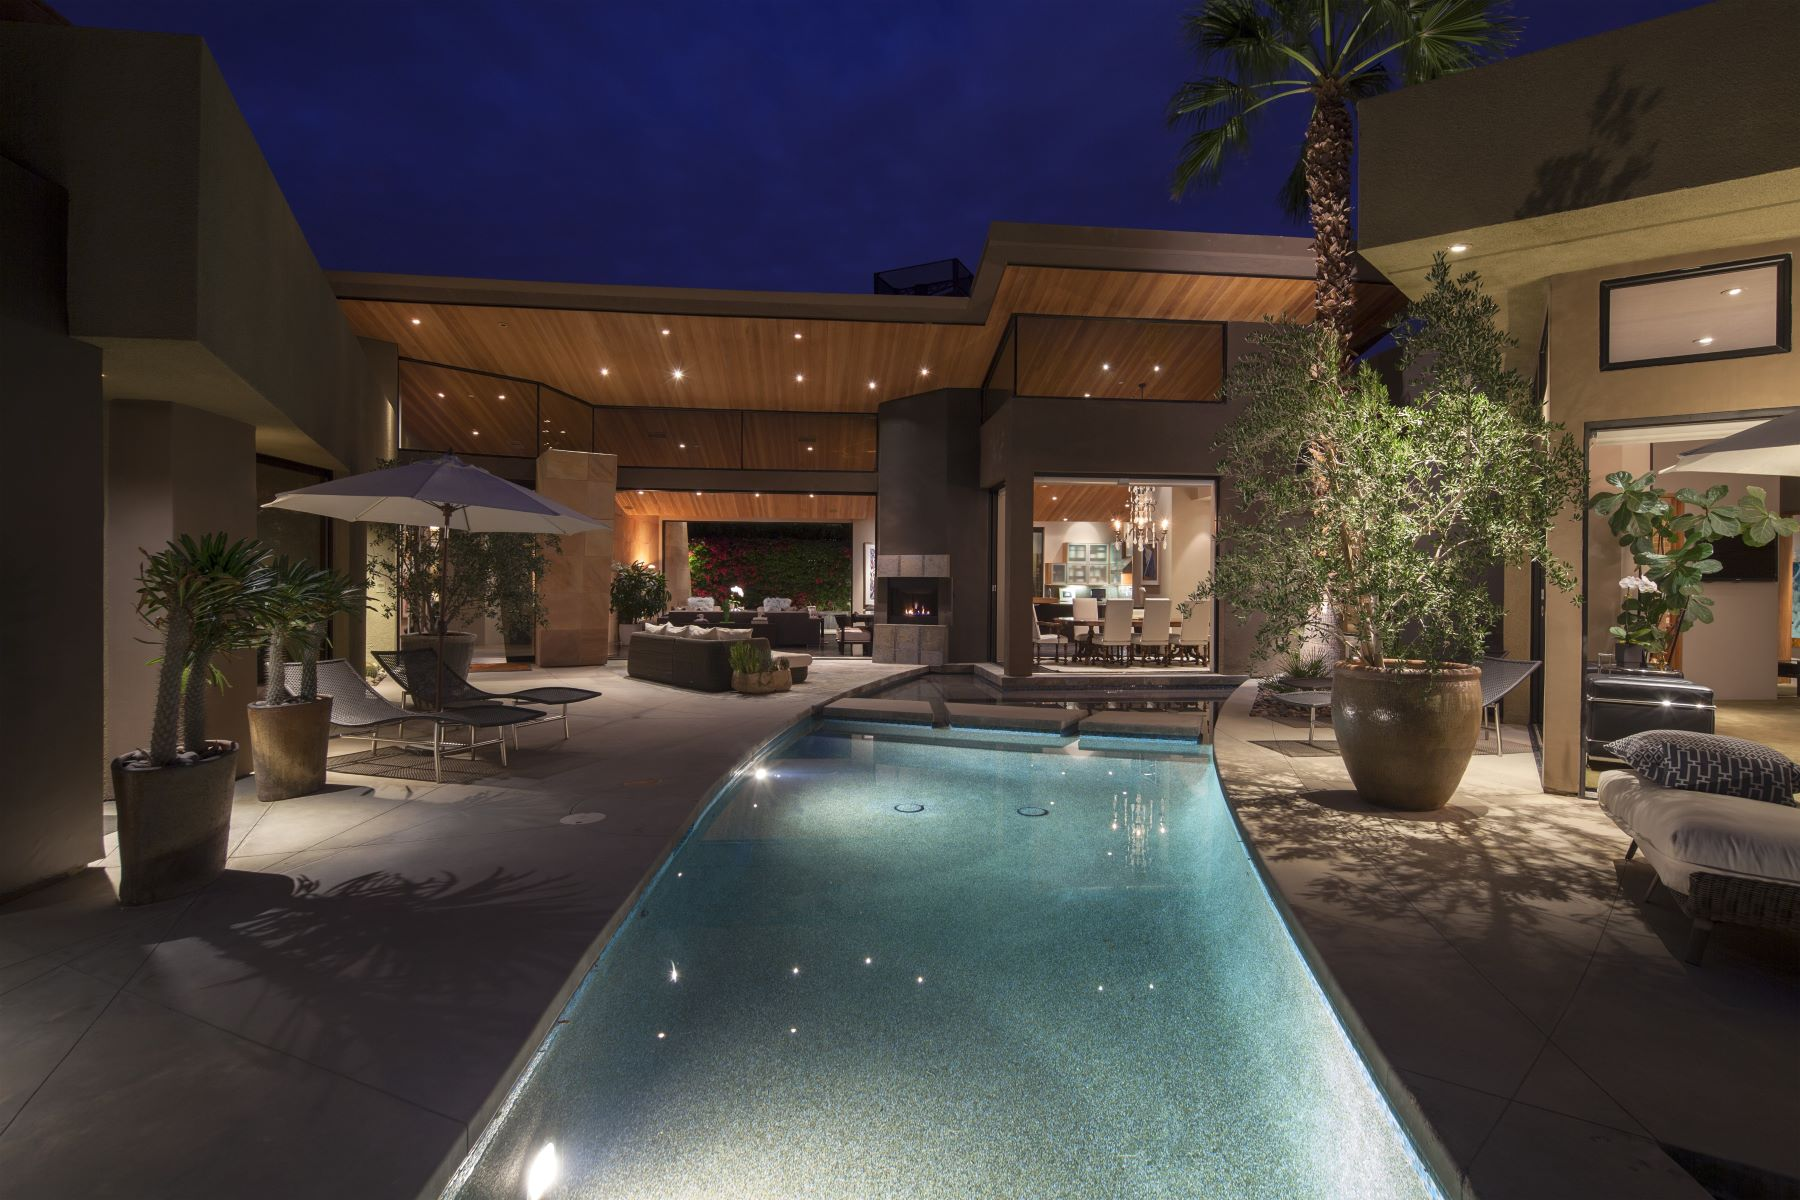 Single Family Home for Sale at 278 Patel Place Palm Springs, California, 92264 United States